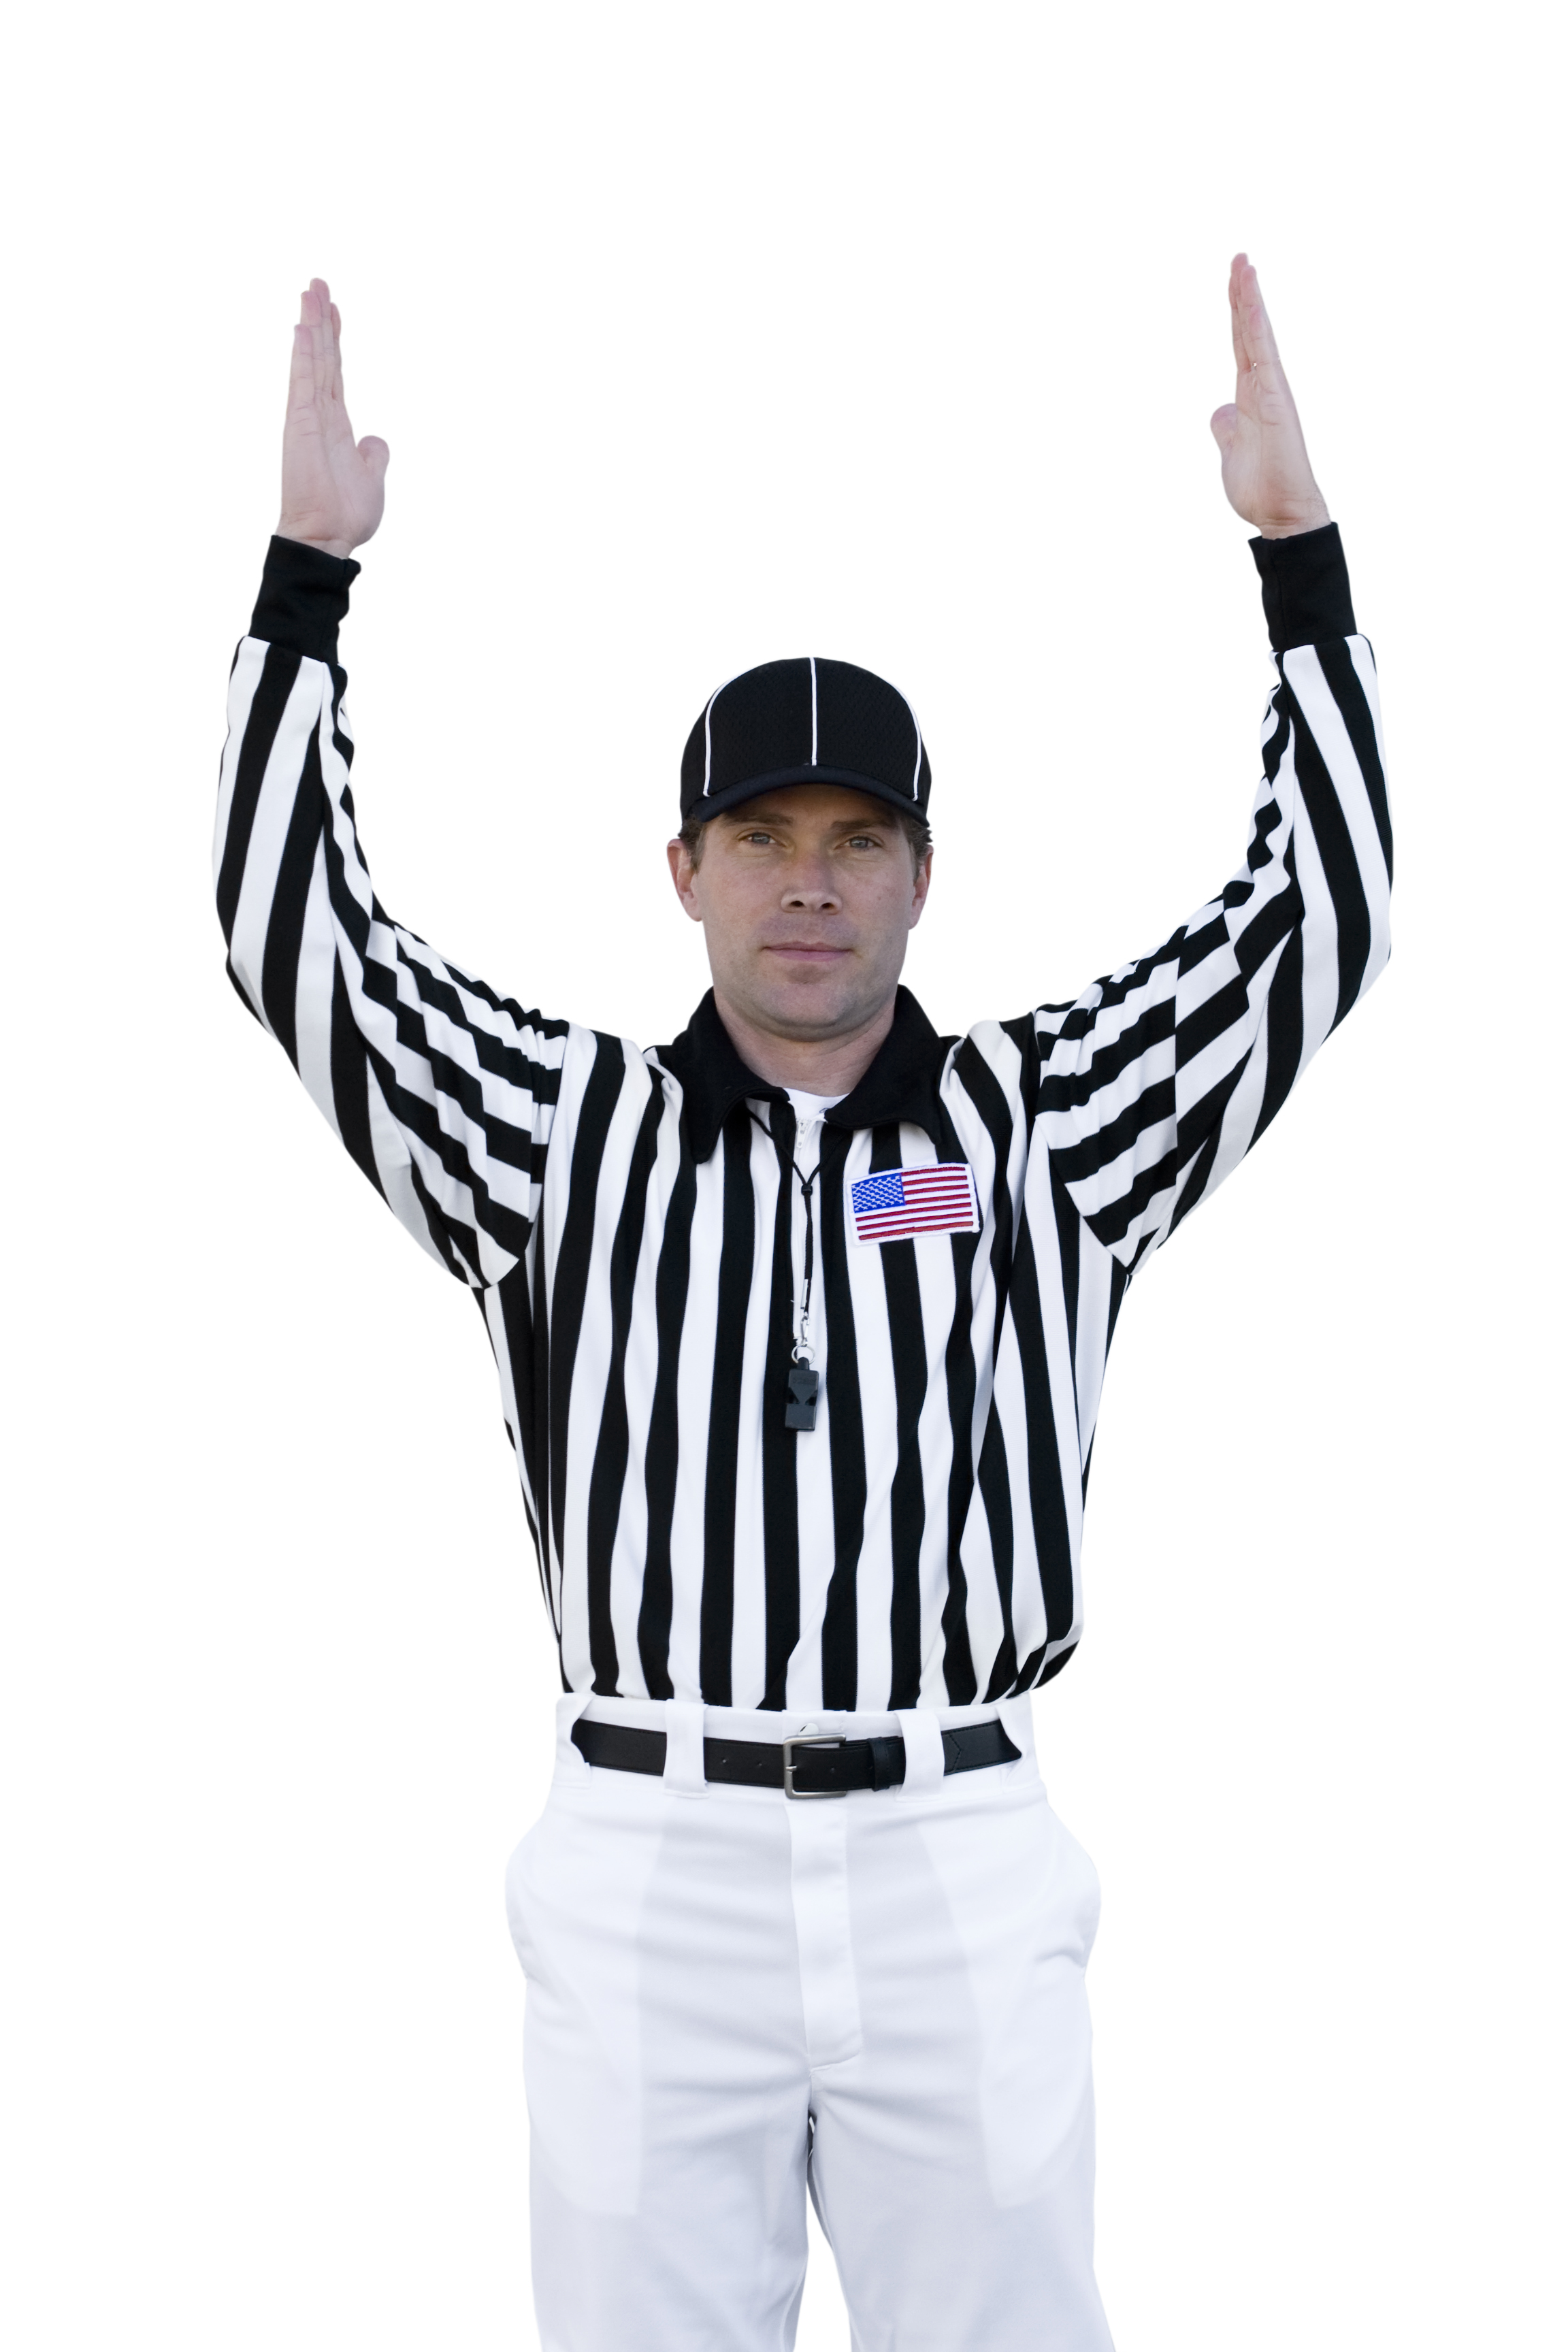 Image of referee